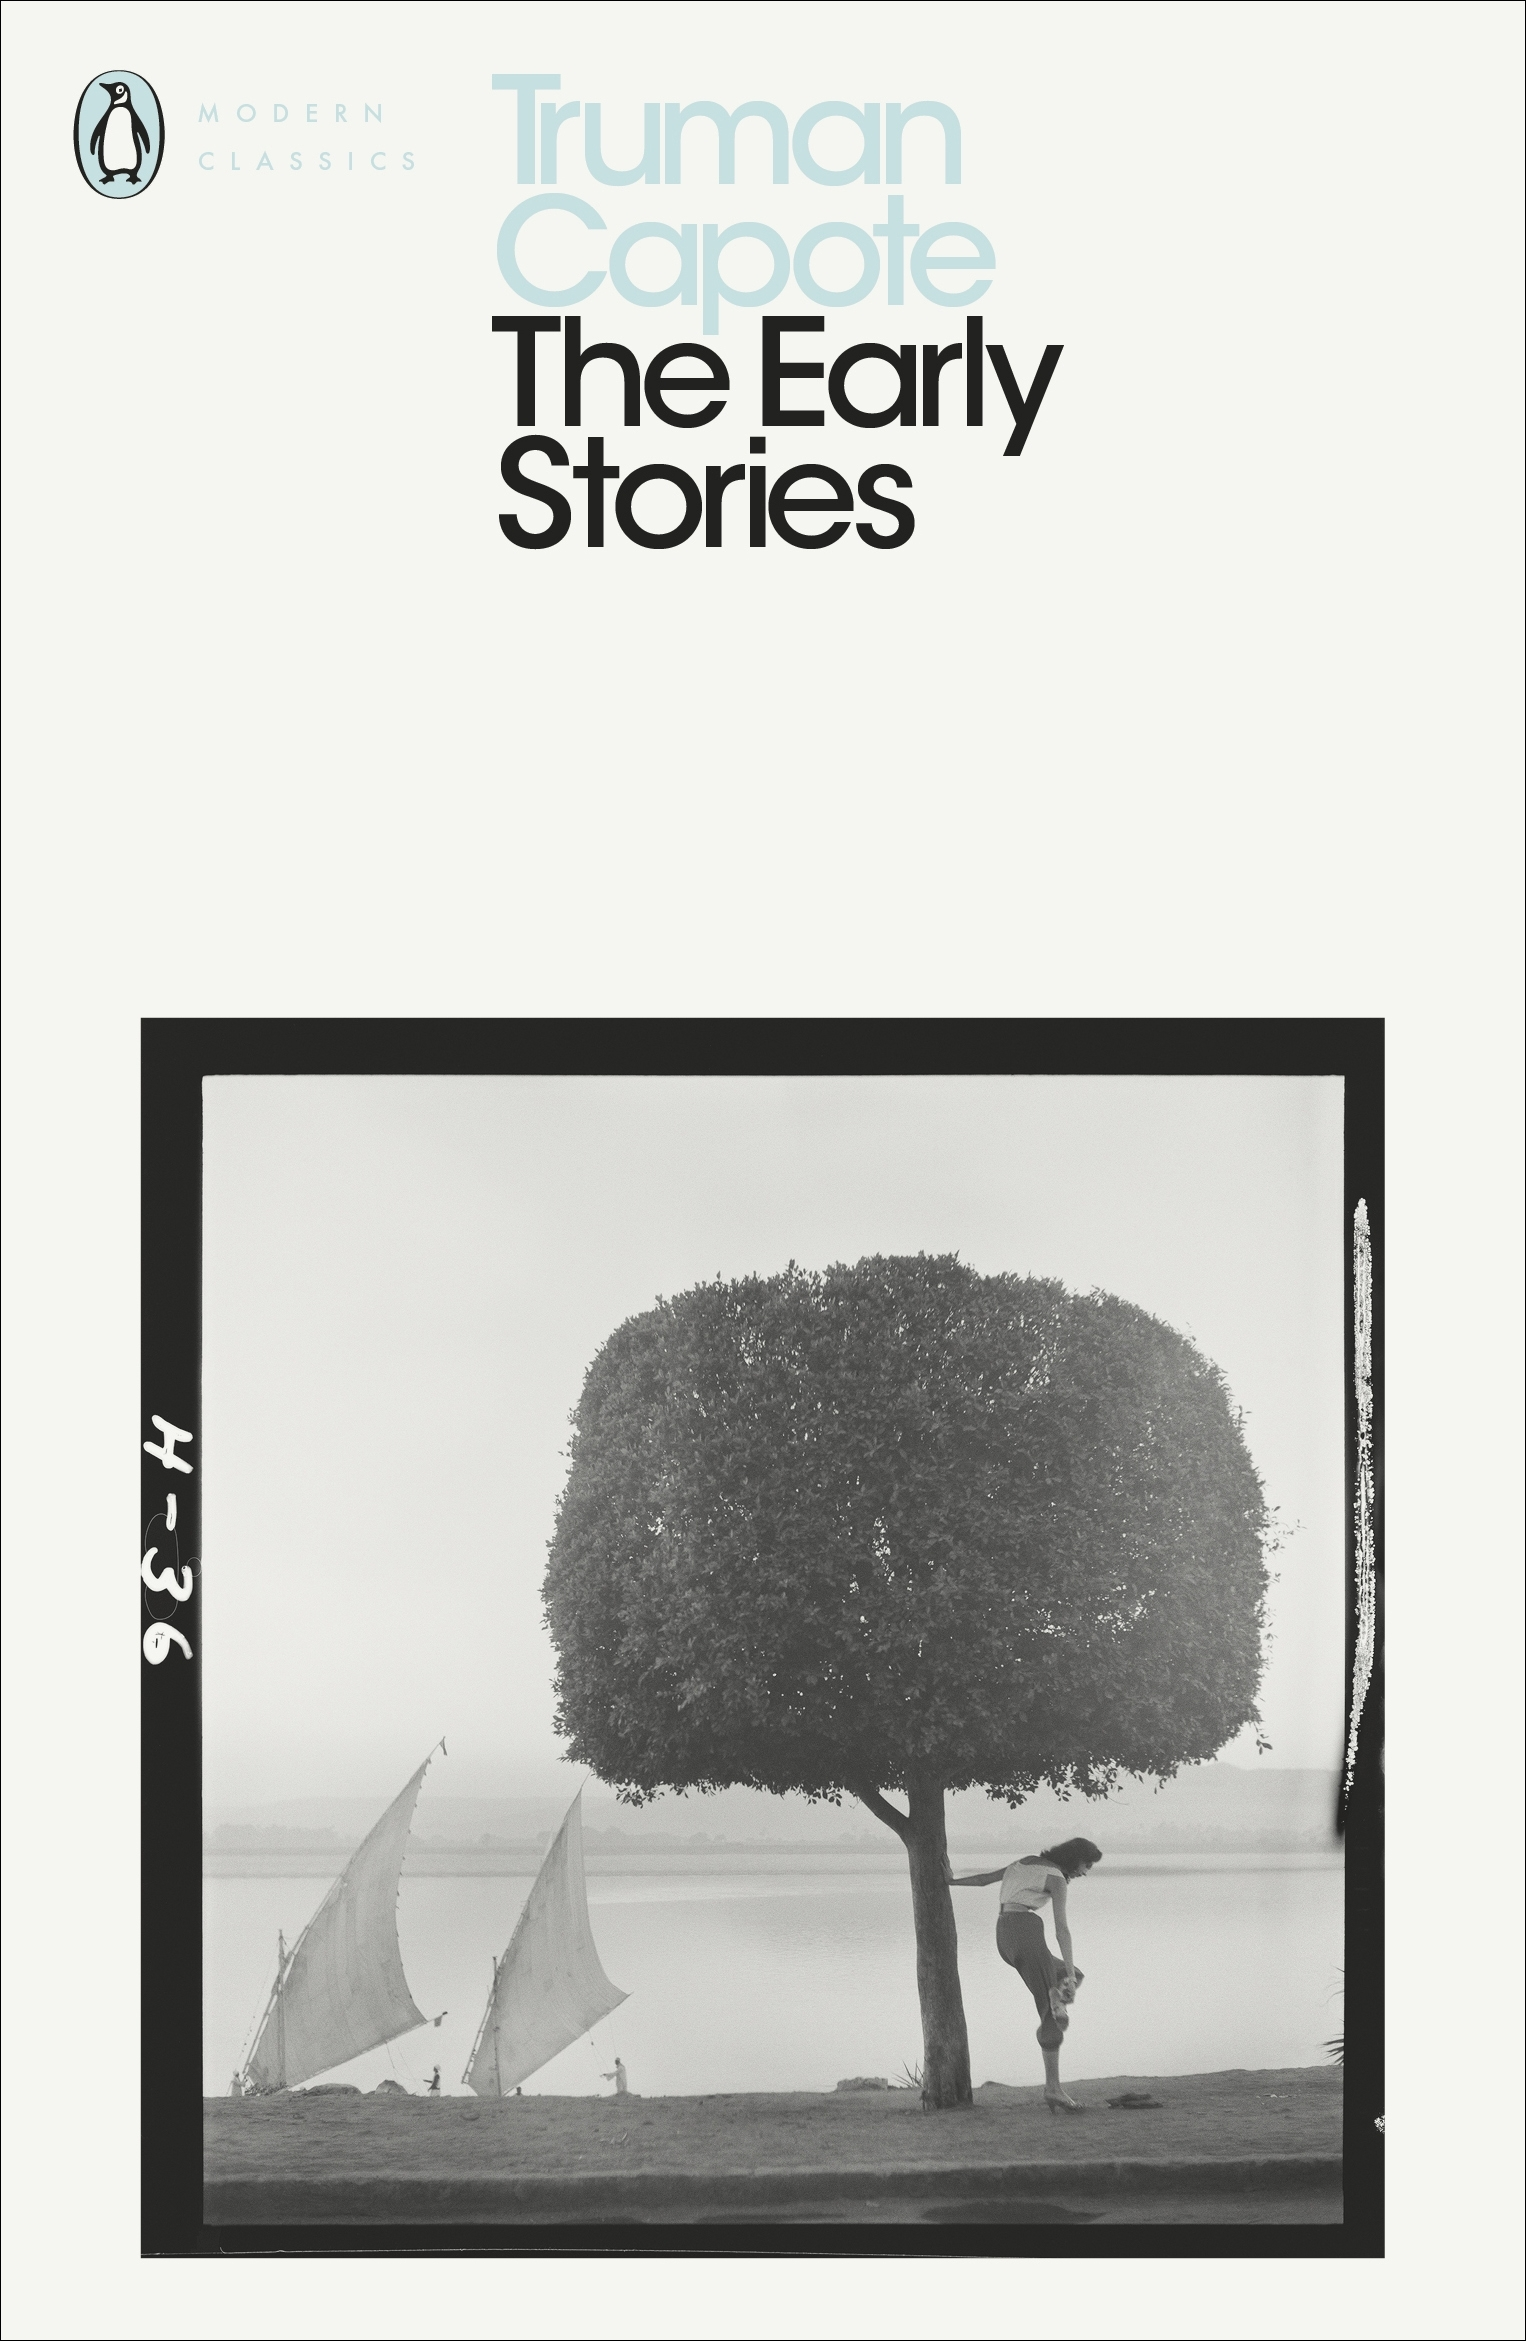 The Early Stories Of Truman Capote: PMC by Truman Capote - Penguin ...